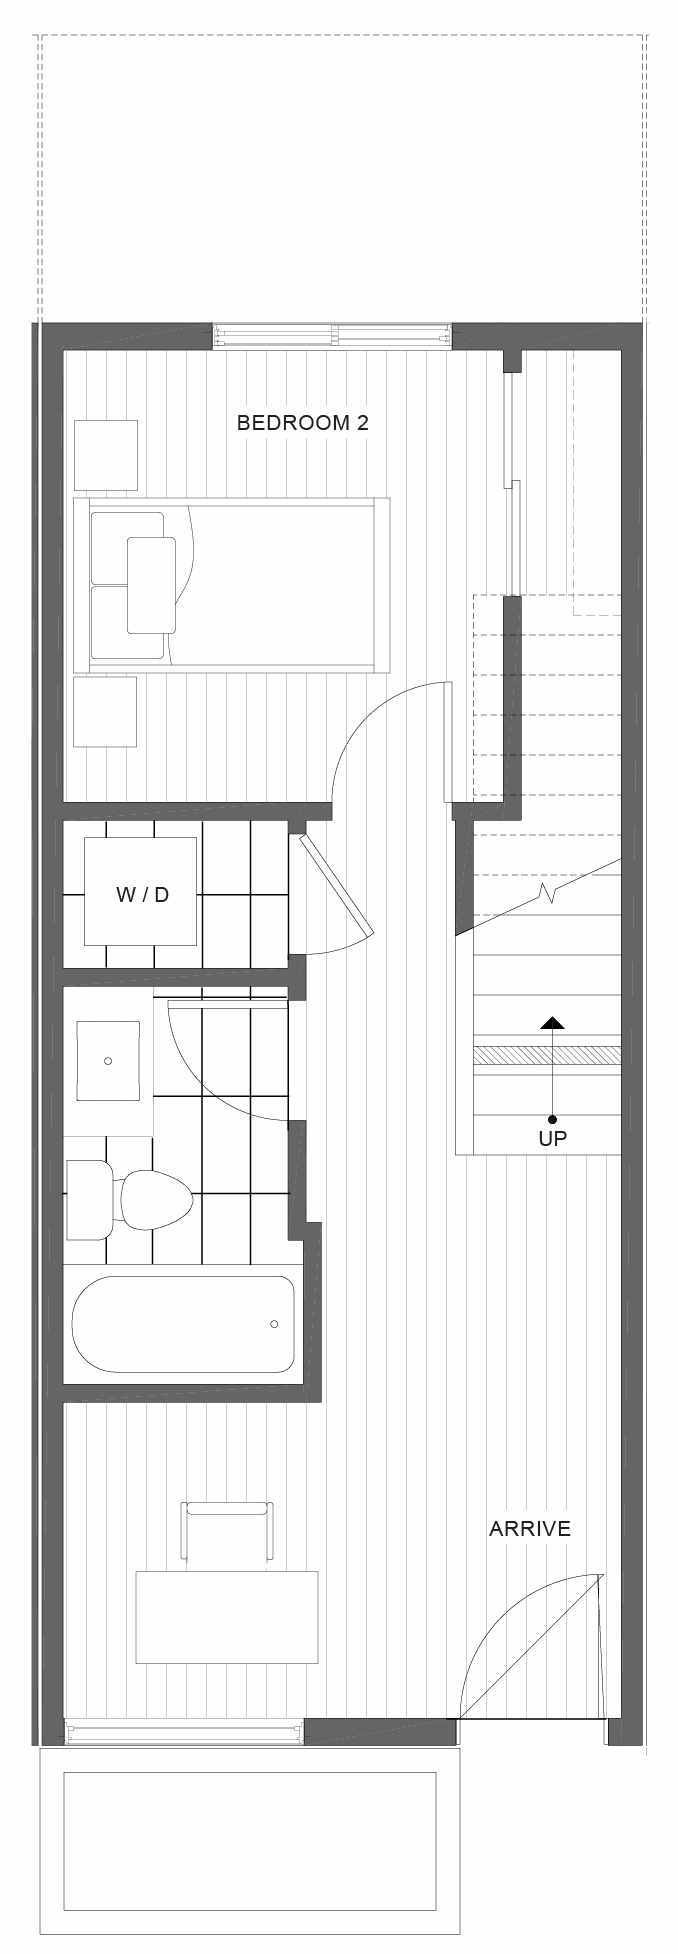 First Floor Plan of 1328 E Spring St of the Corazon II Townhomes